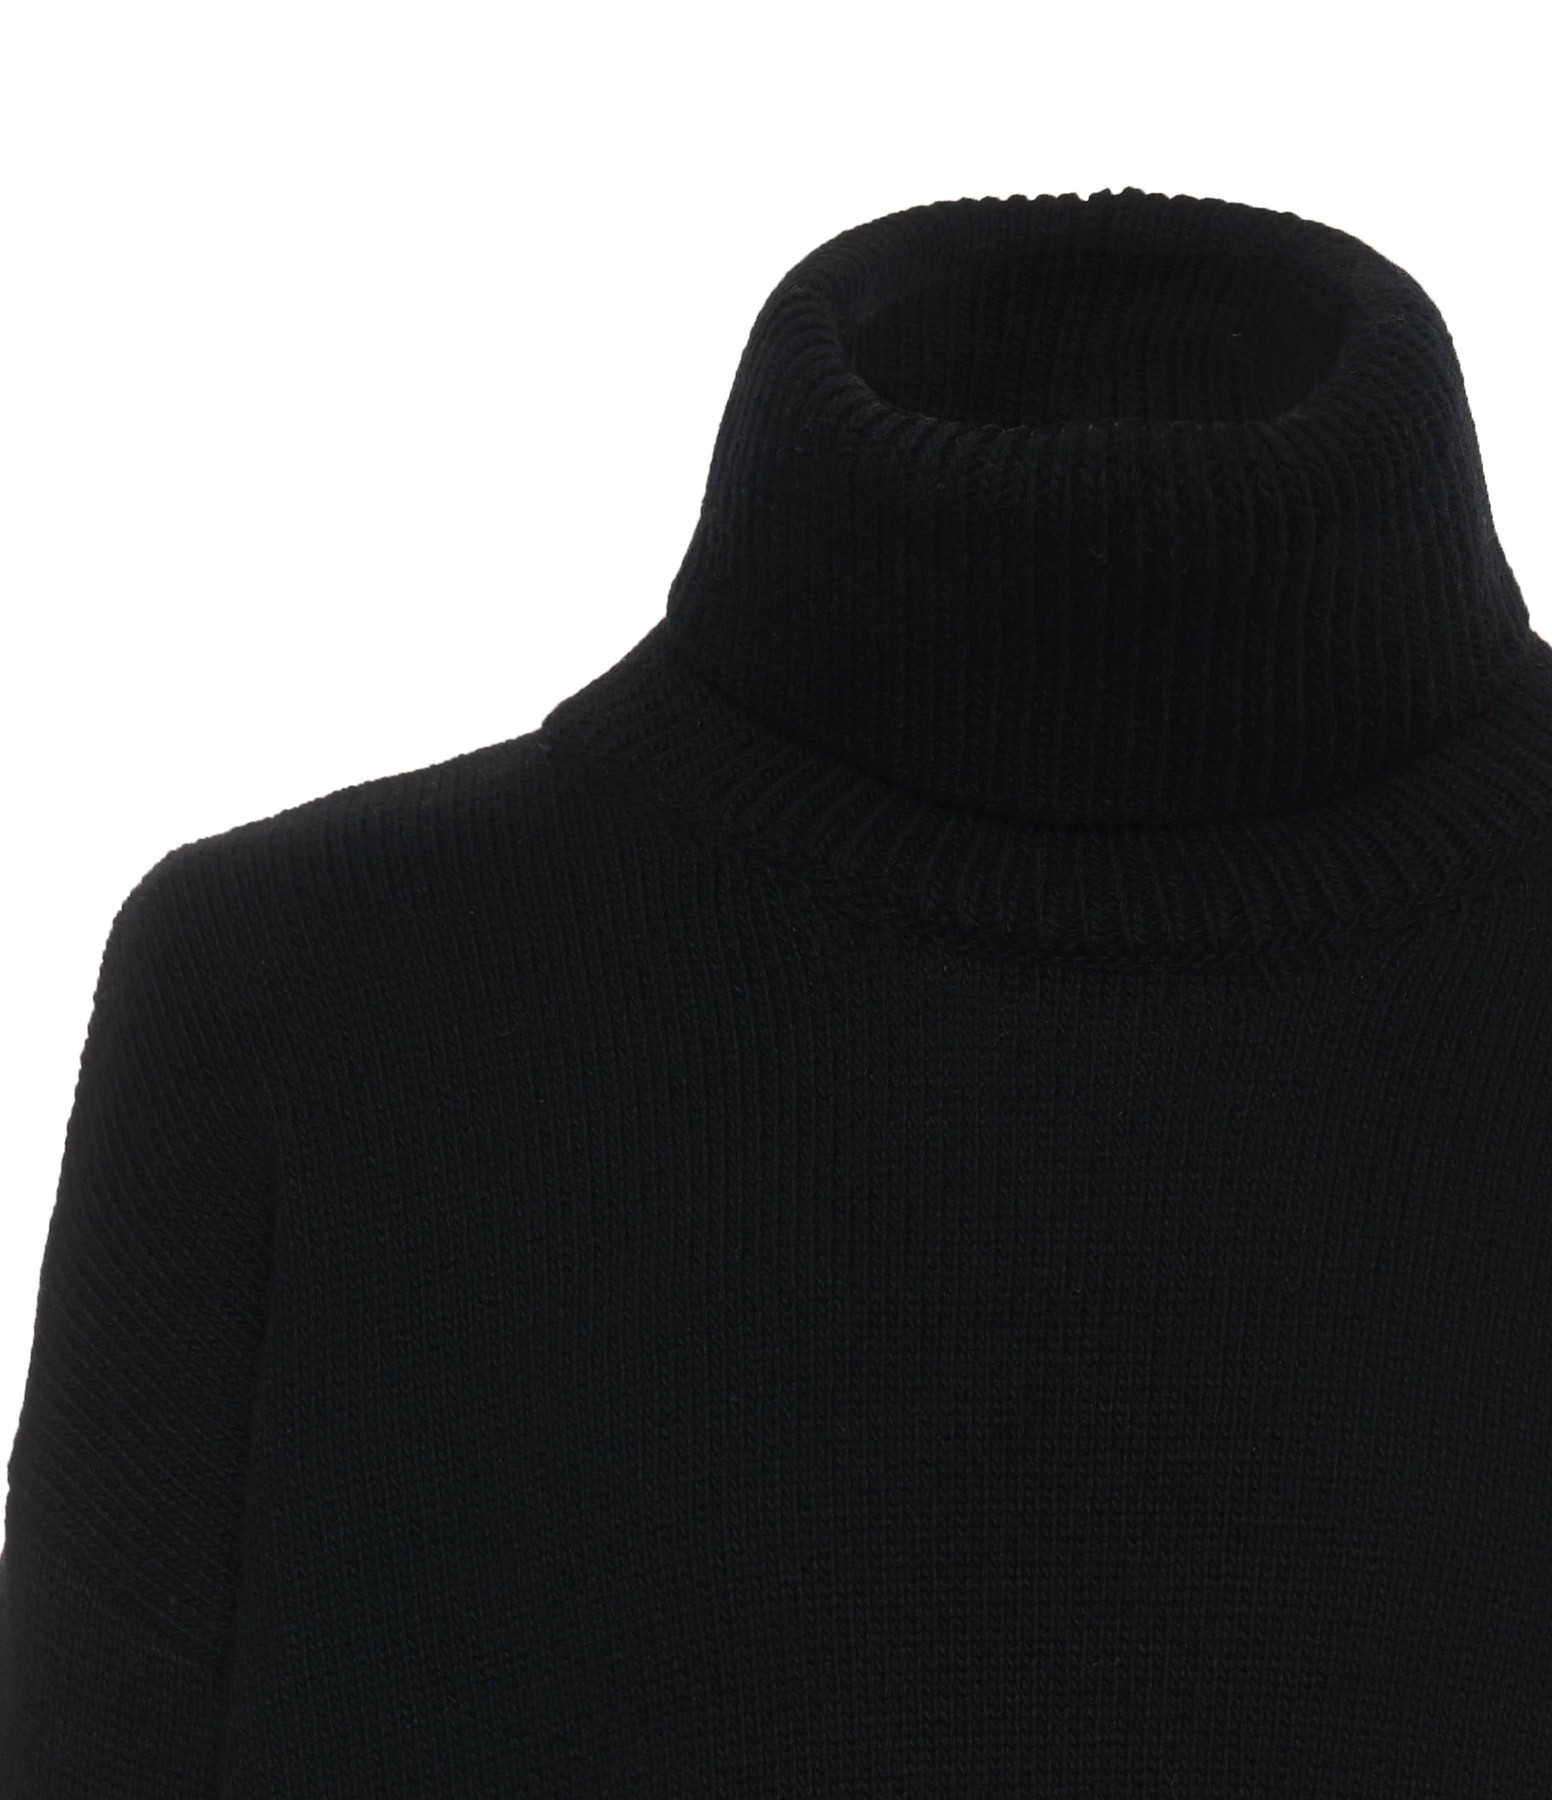 MADE IN TOMBOY - Pull Col Roulé Noir